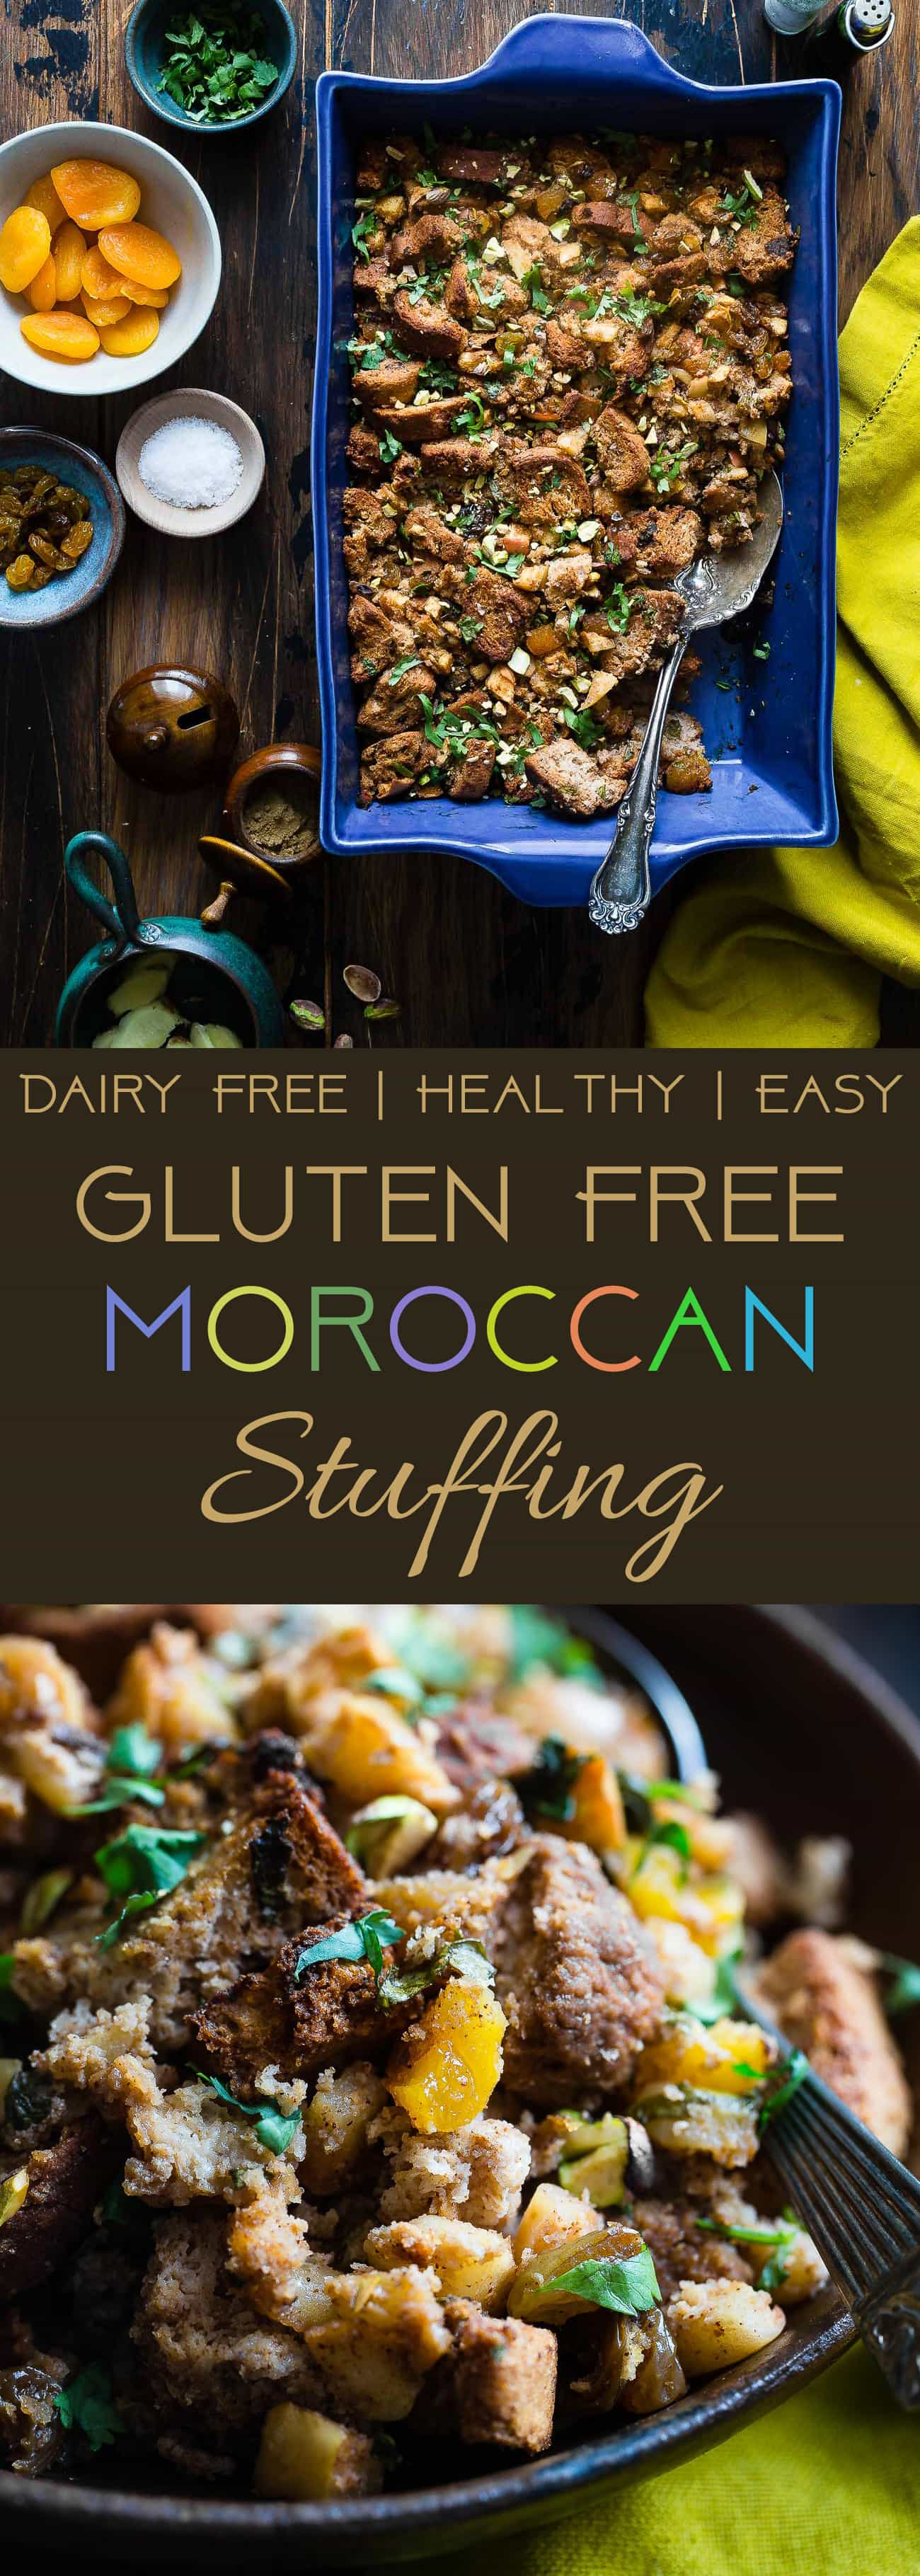 Moroccan Gluten Free Stuffing -This simple gluten free stuffing is made with spicy-sweet Moroccan flavors, apples and dried fruit! It's a healthy, dairy-free twist on a classic side dish that's perfect for Thanksgiving! | Foodfaithfitness.com | @FoodFaithFit | best gluten free stuffing. homemade gluten free stuffing. thanksgiving gluten free stuffing. gluten free stuffing for thanksgiving. clean eating stuffing. udis gluten free stuffing. apple gluten free stuffing.